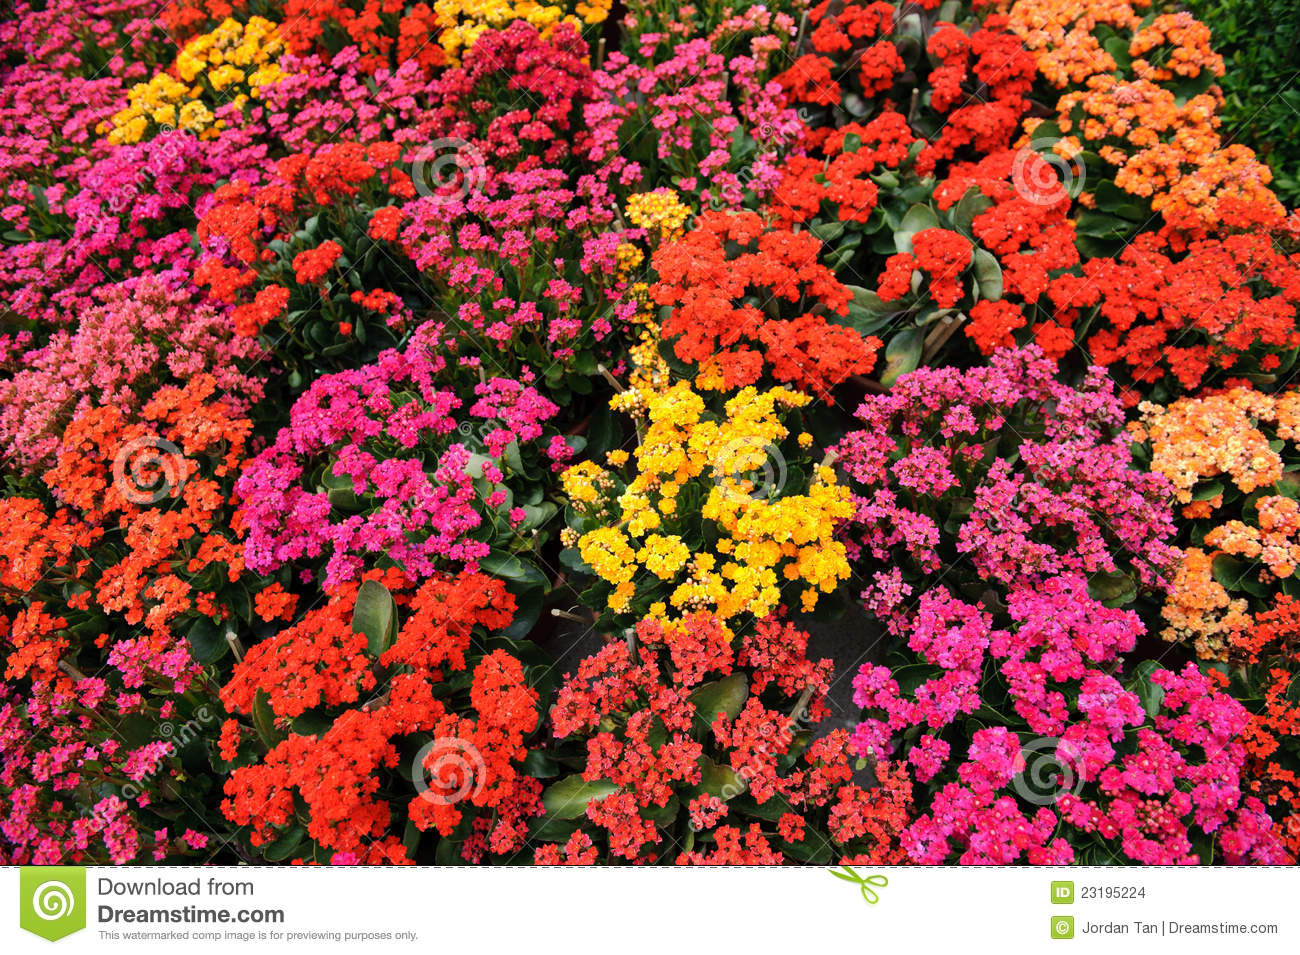 Colorful Flower Bed Stock Images - Image: 23195224